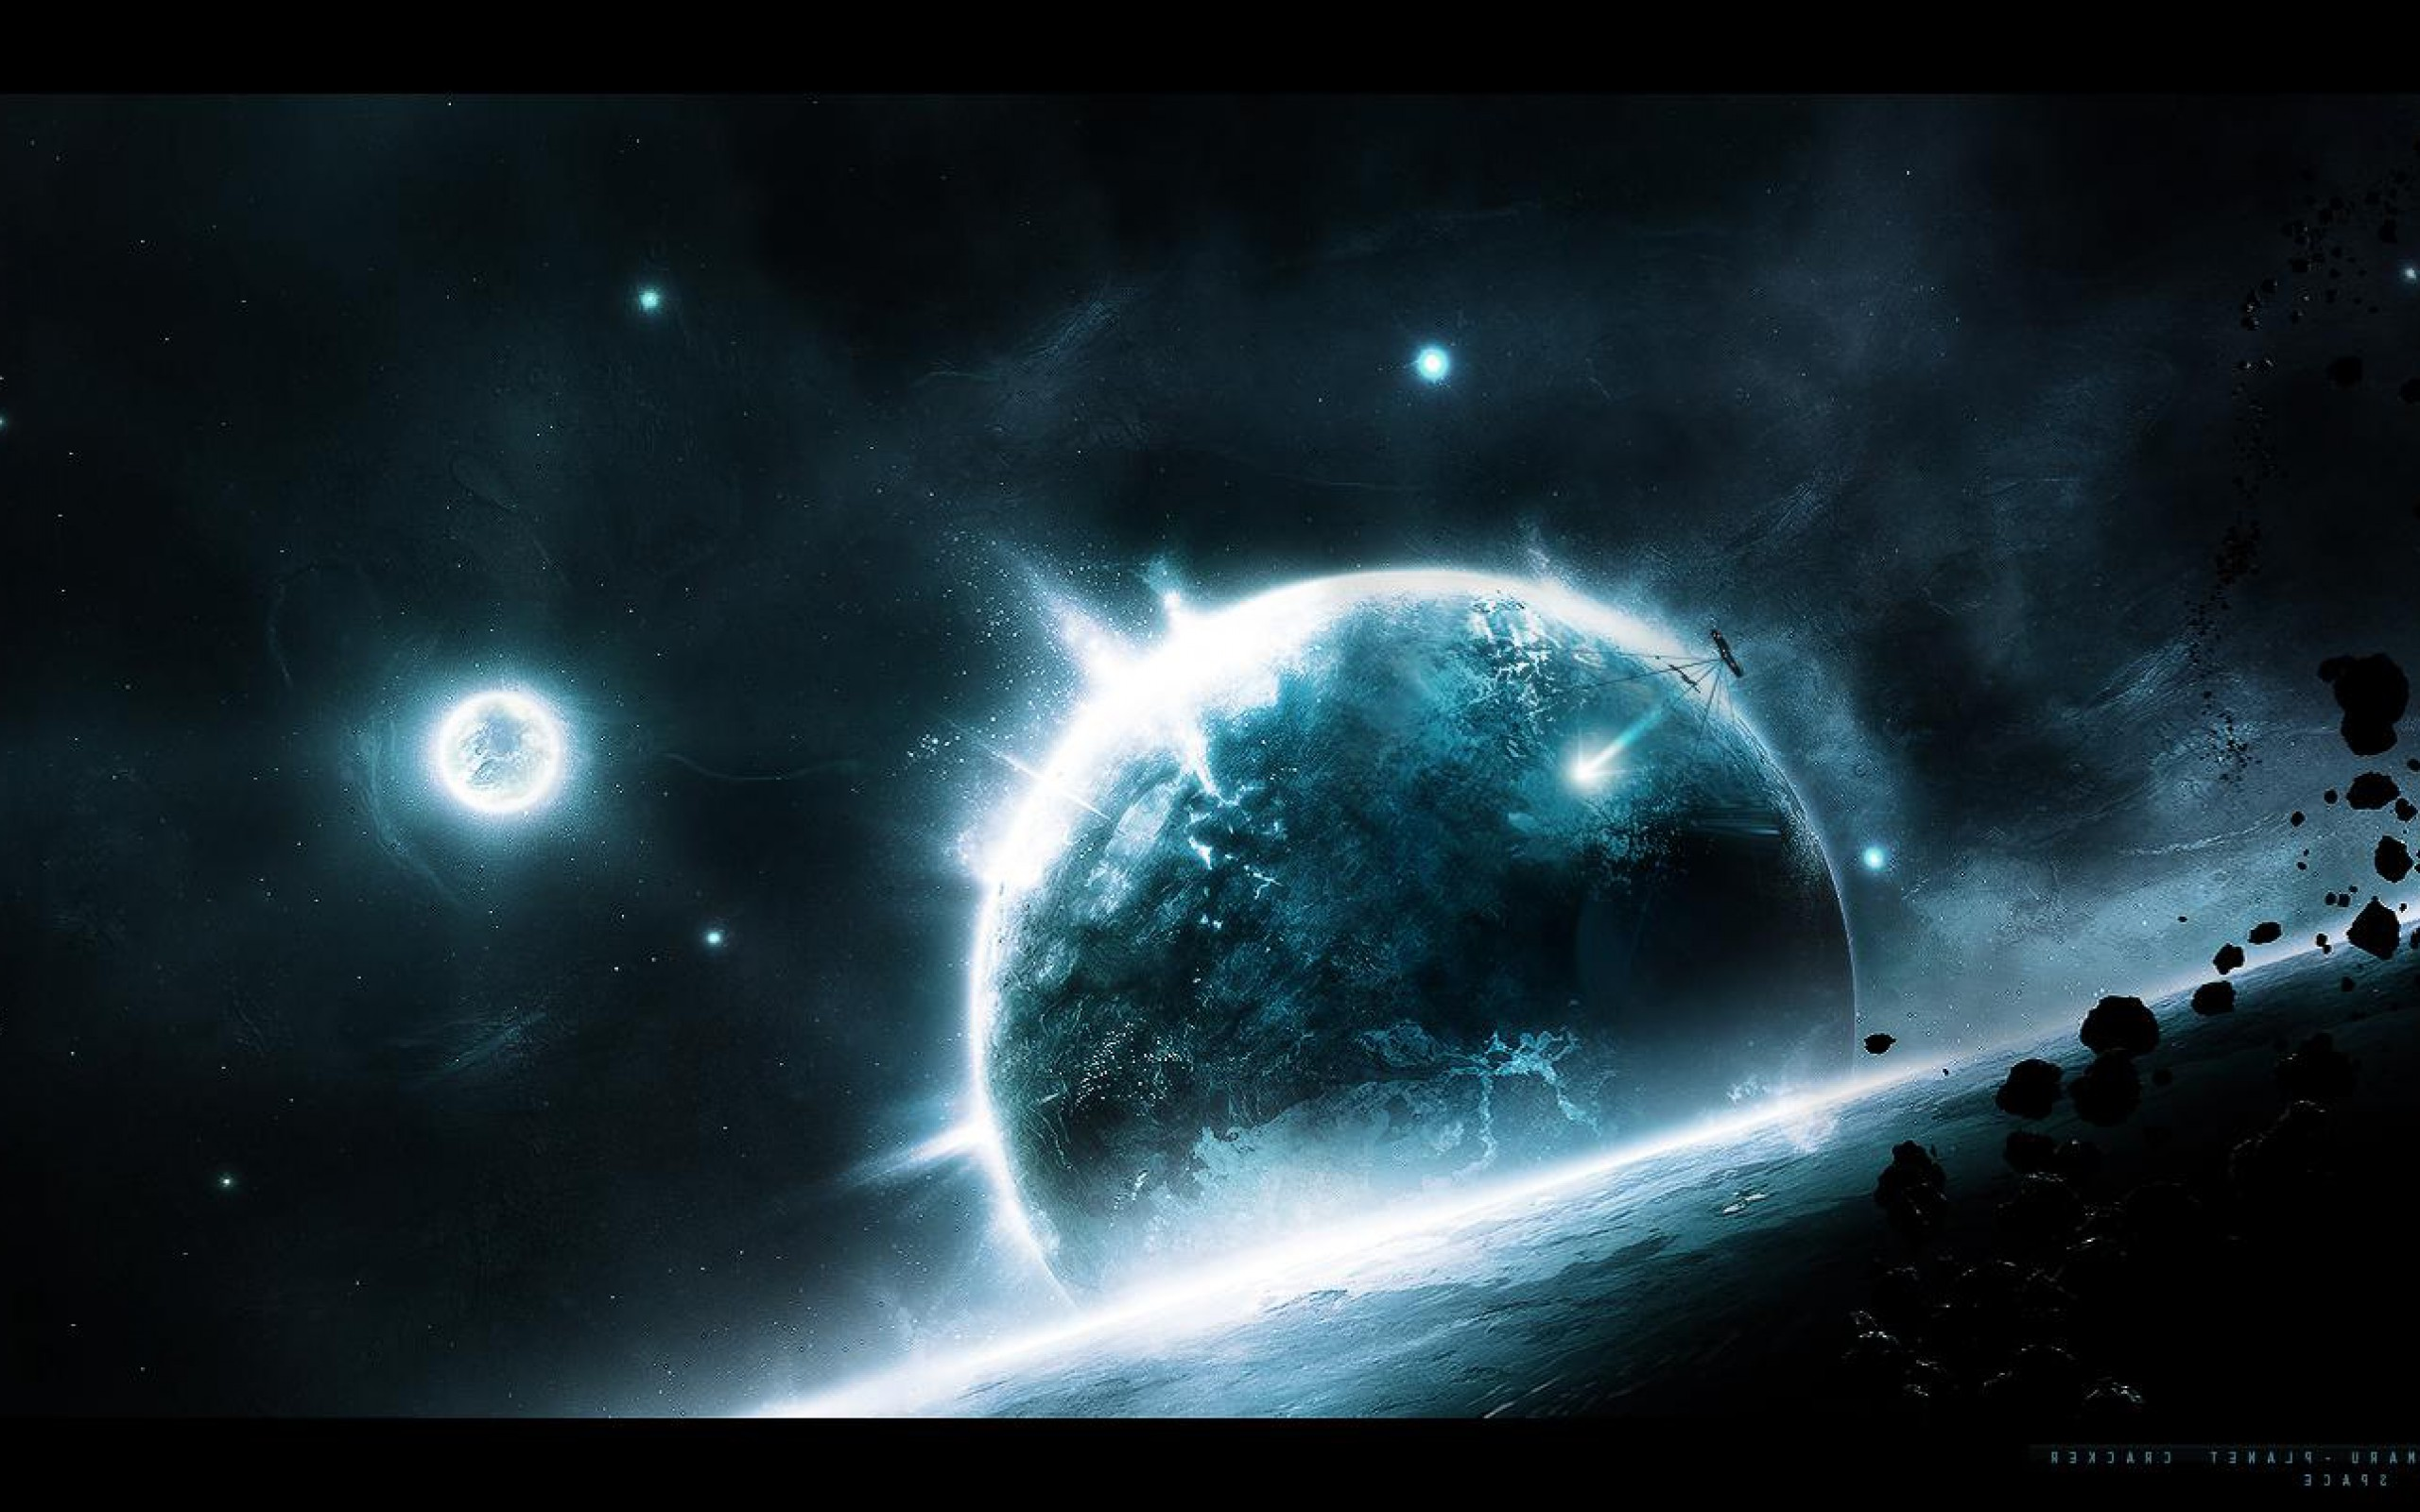 Hd Wallpaper Science Fiction: HD Science Fiction Wallpapers